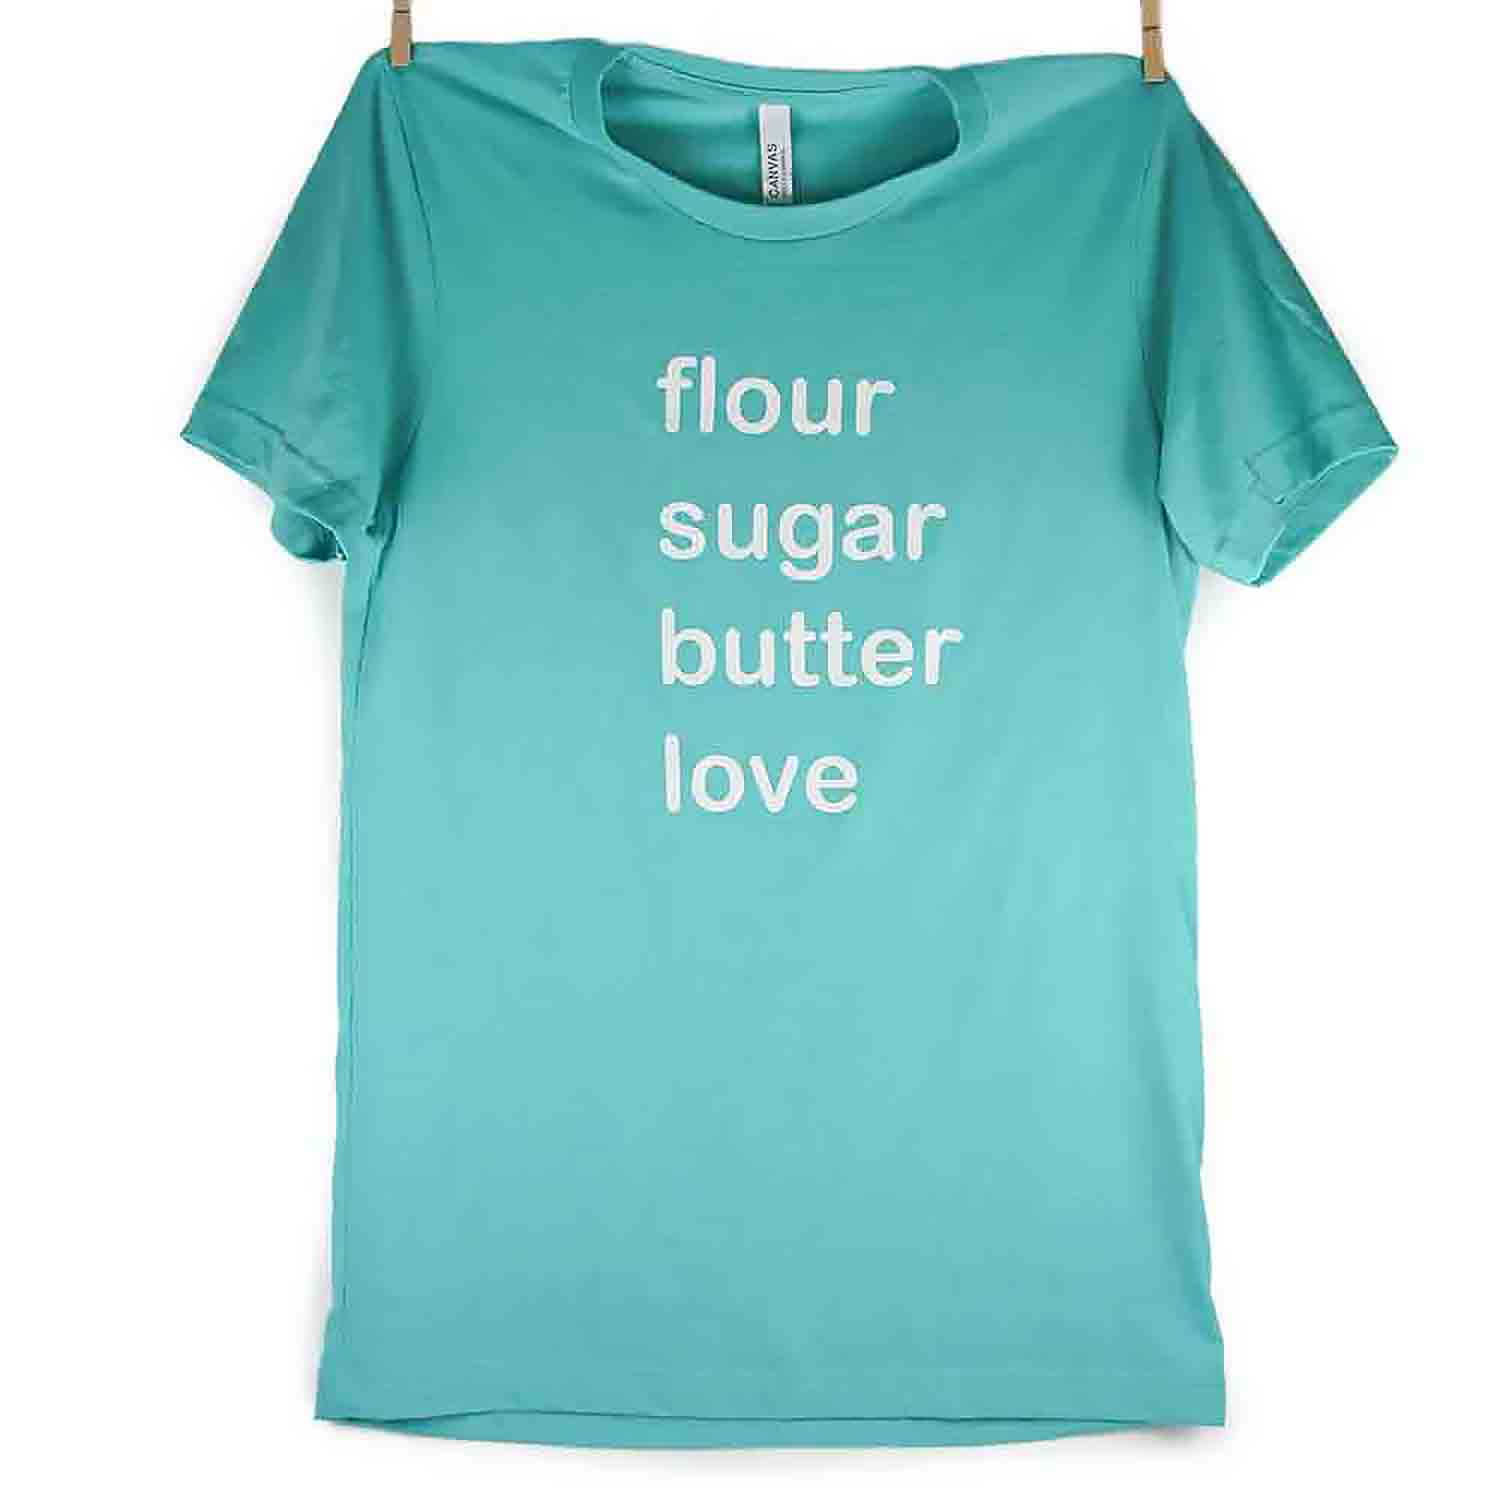 Teal Flour Sugar Butter Love T-Shirt - Medium